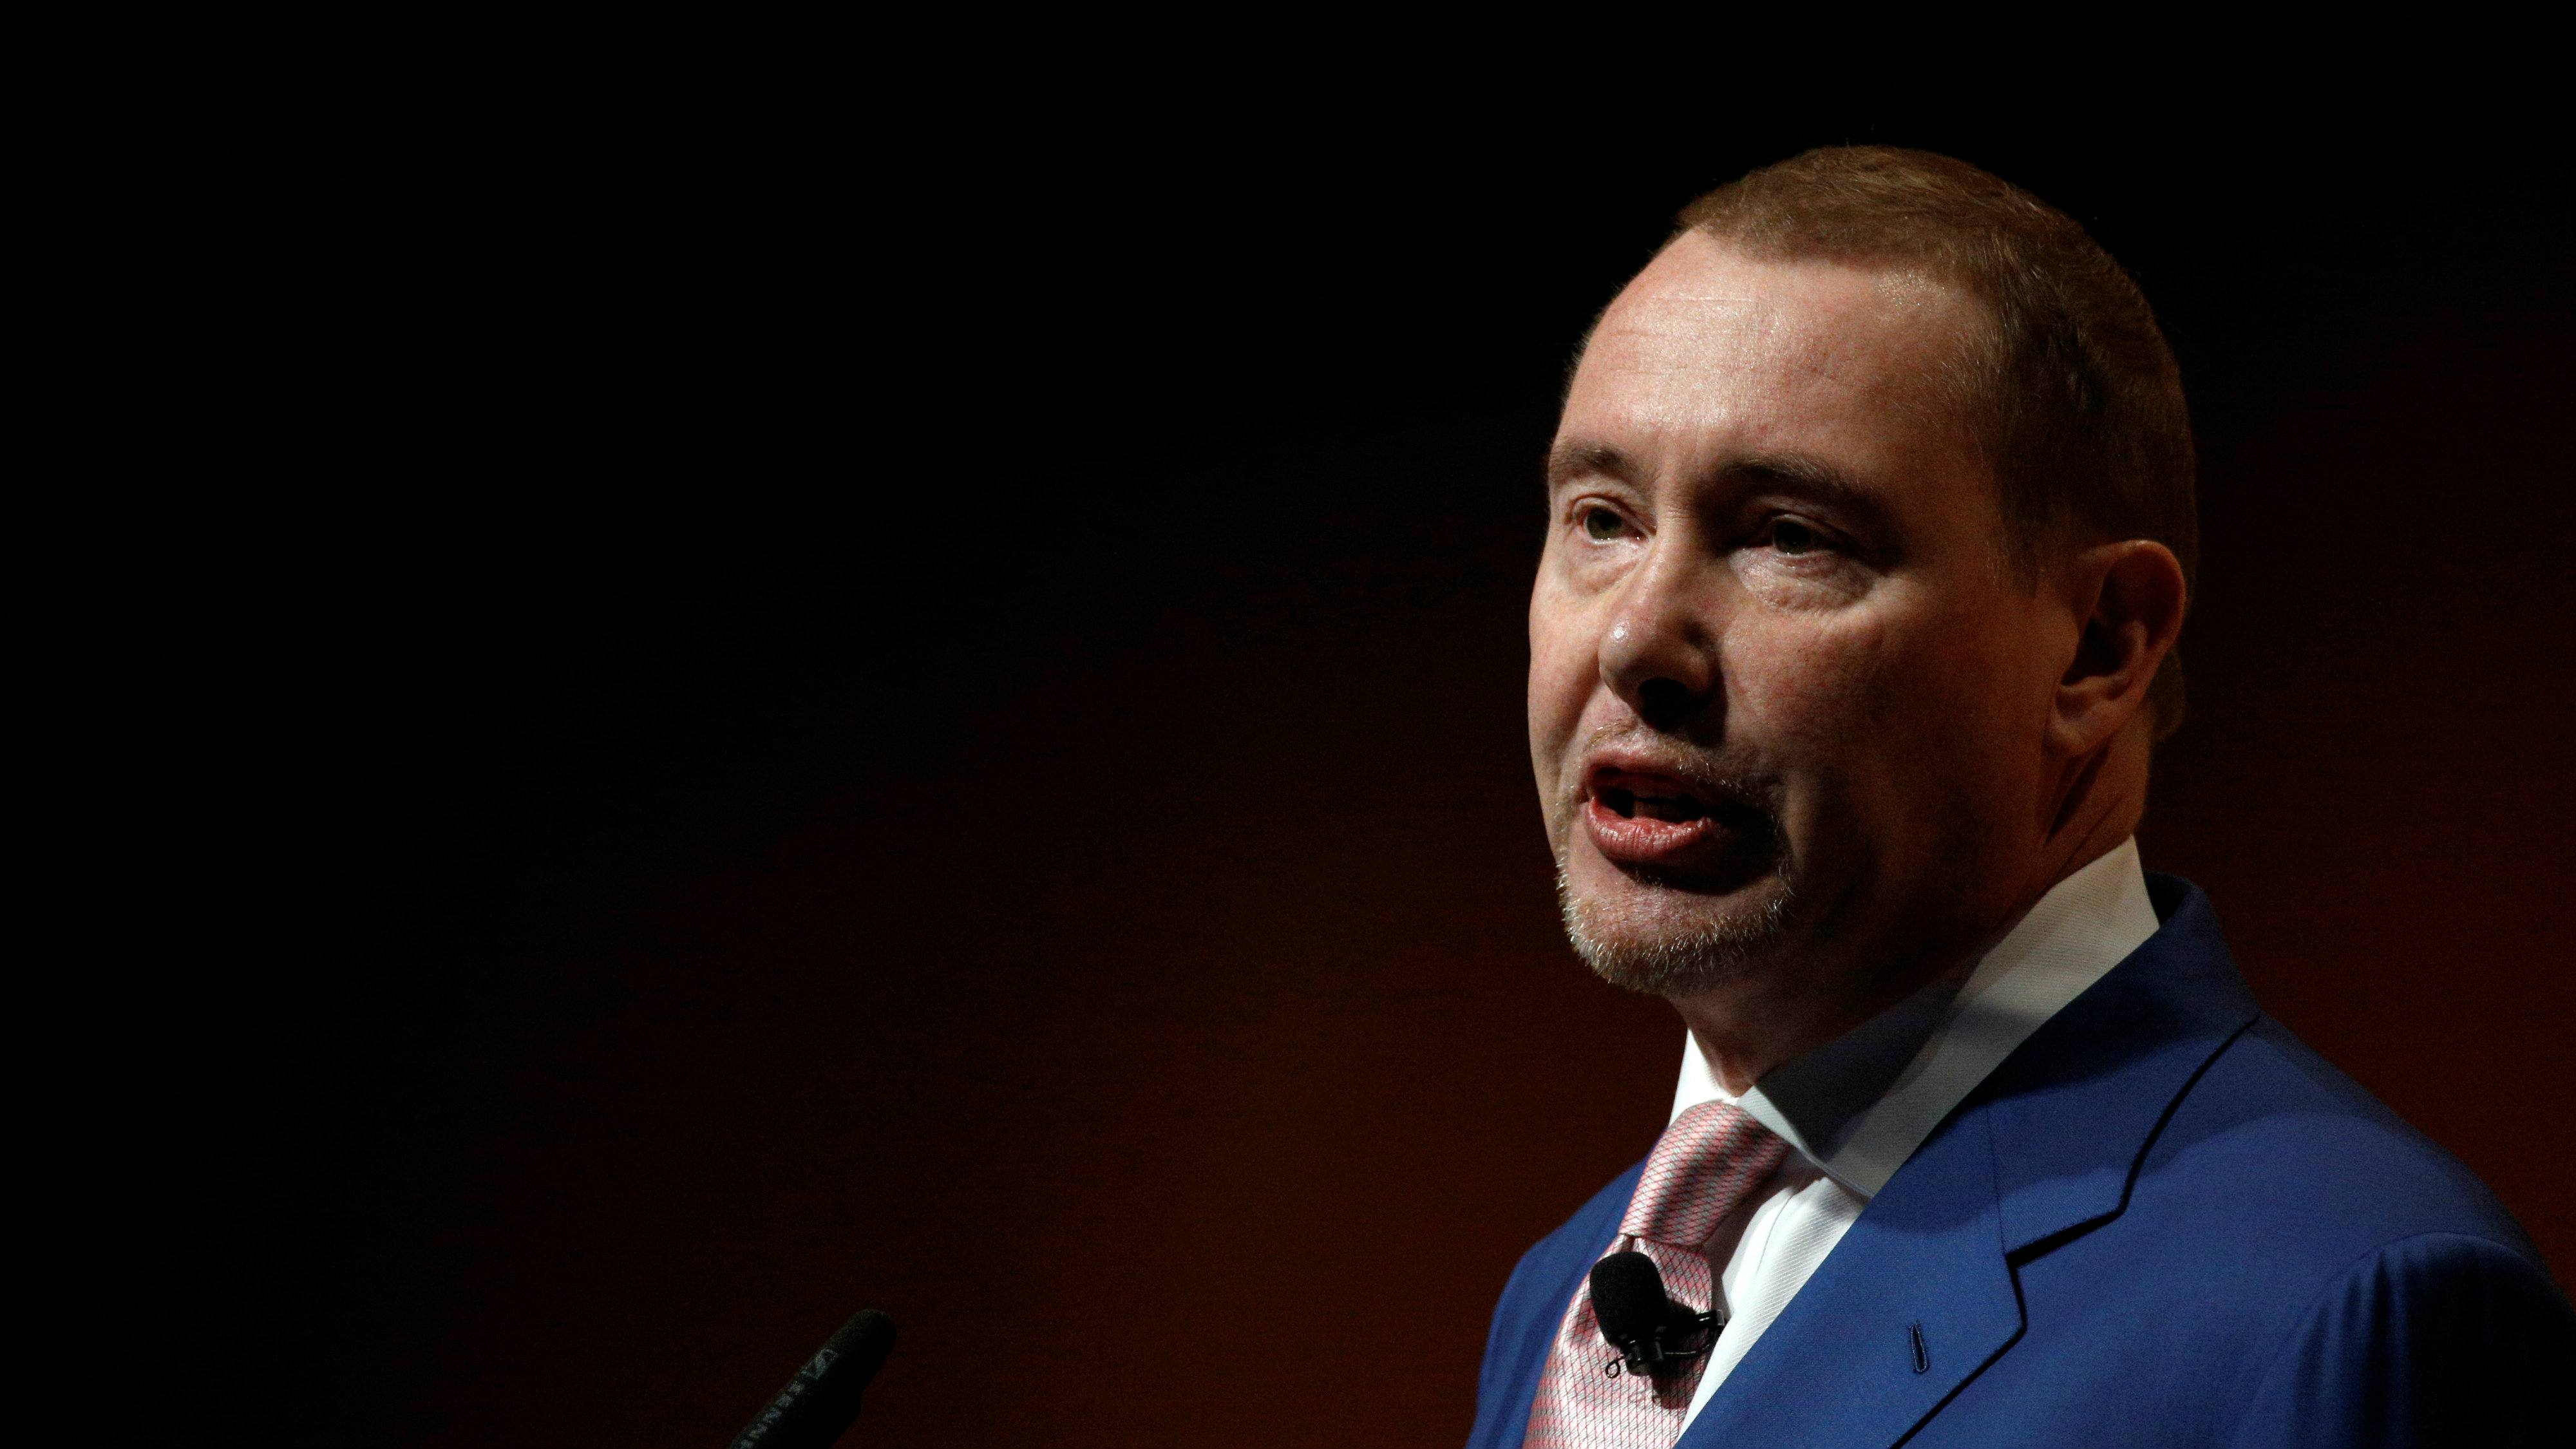 Jeffrey Gundlach, Chief Executive Officer, DoubleLine Capital LP., speaks at the Sohn Investment Conference in New York City, U.S. May 4, 2016.